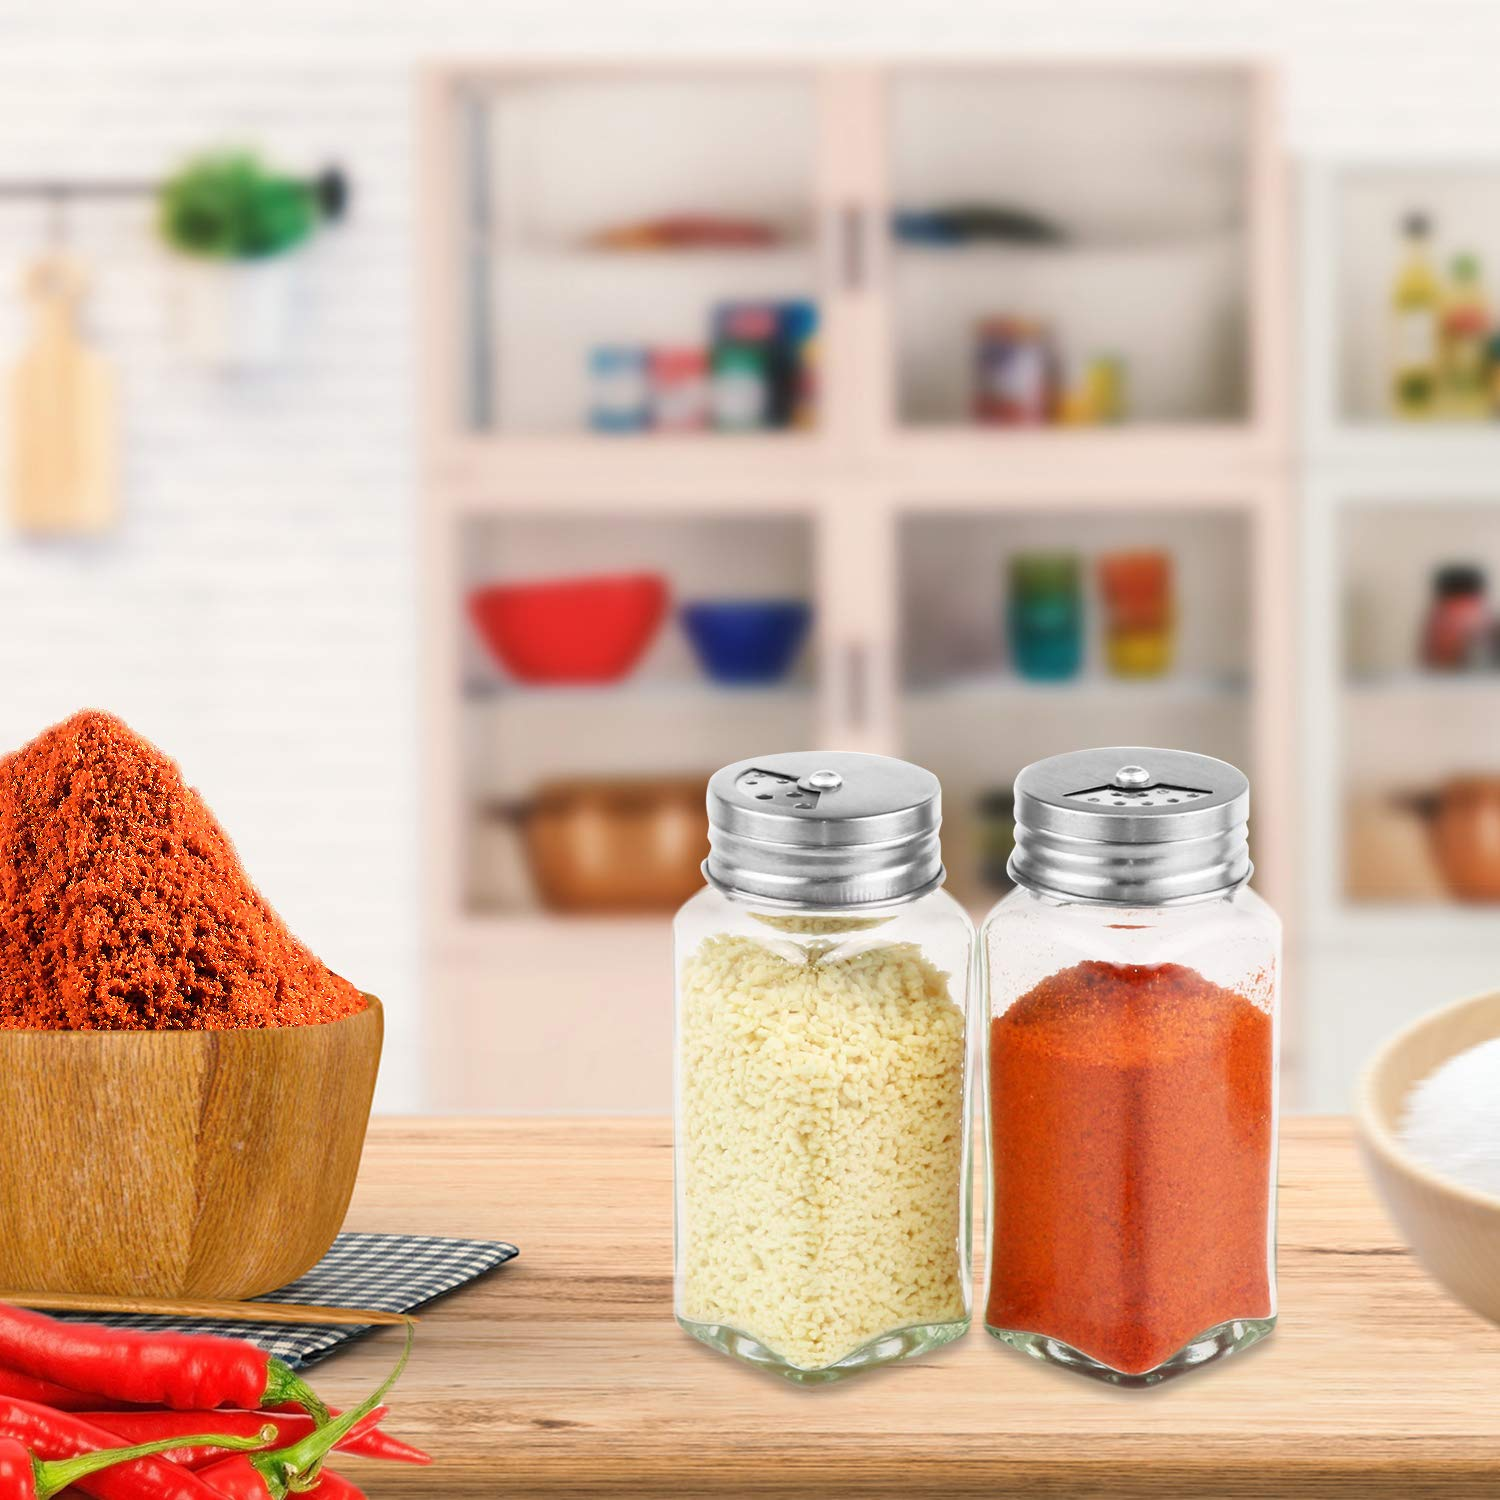 Pour//sift Shaker Lid Equipped with Silicone Funnel With Screw cap Nozama 2pcs Glass Spice Jars 4oz Square Spice Bottles